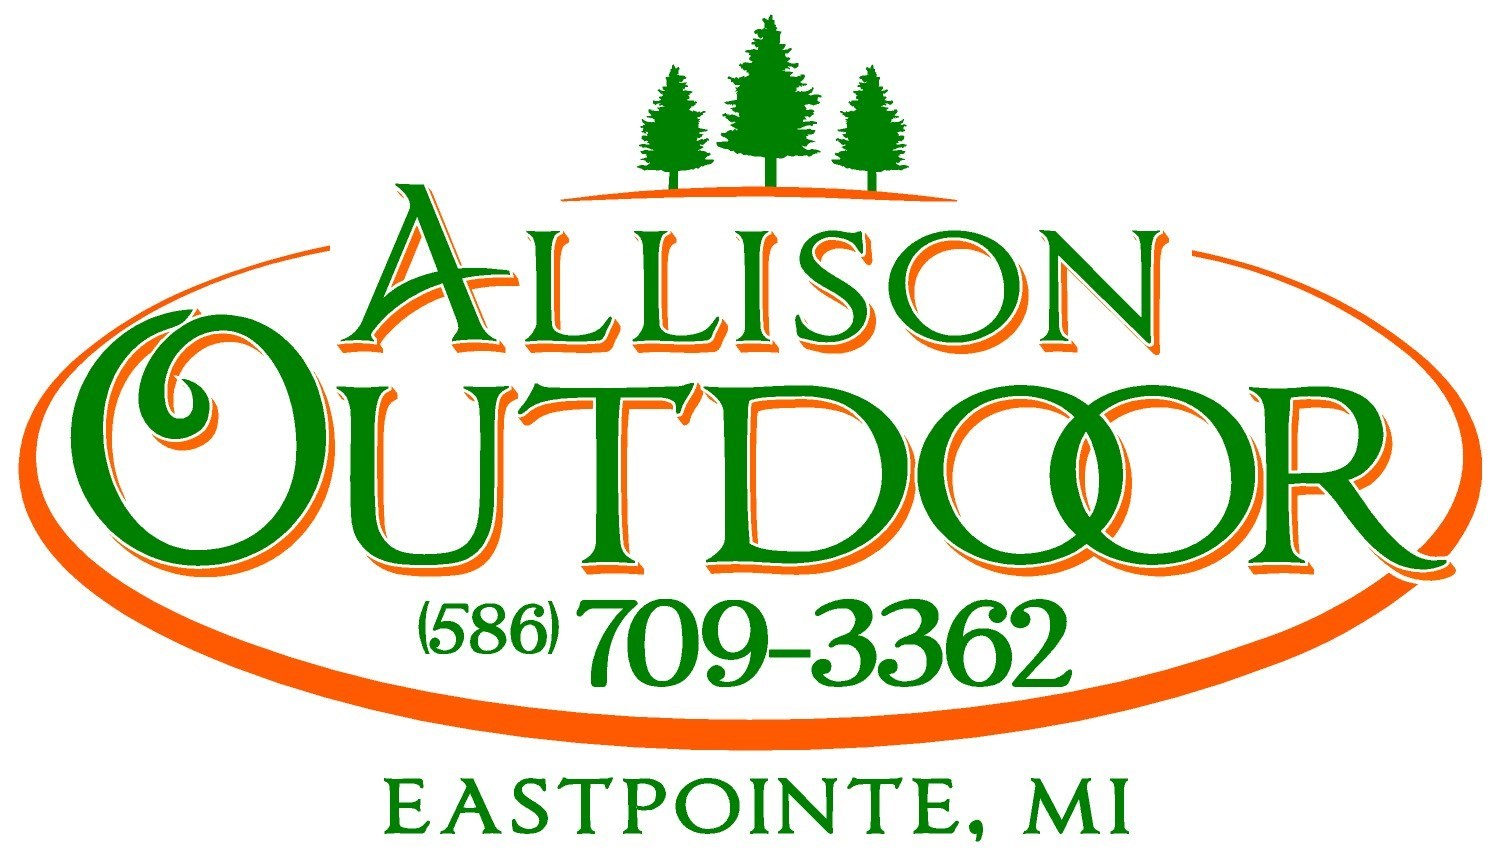 Allison Outdoor LLC logo